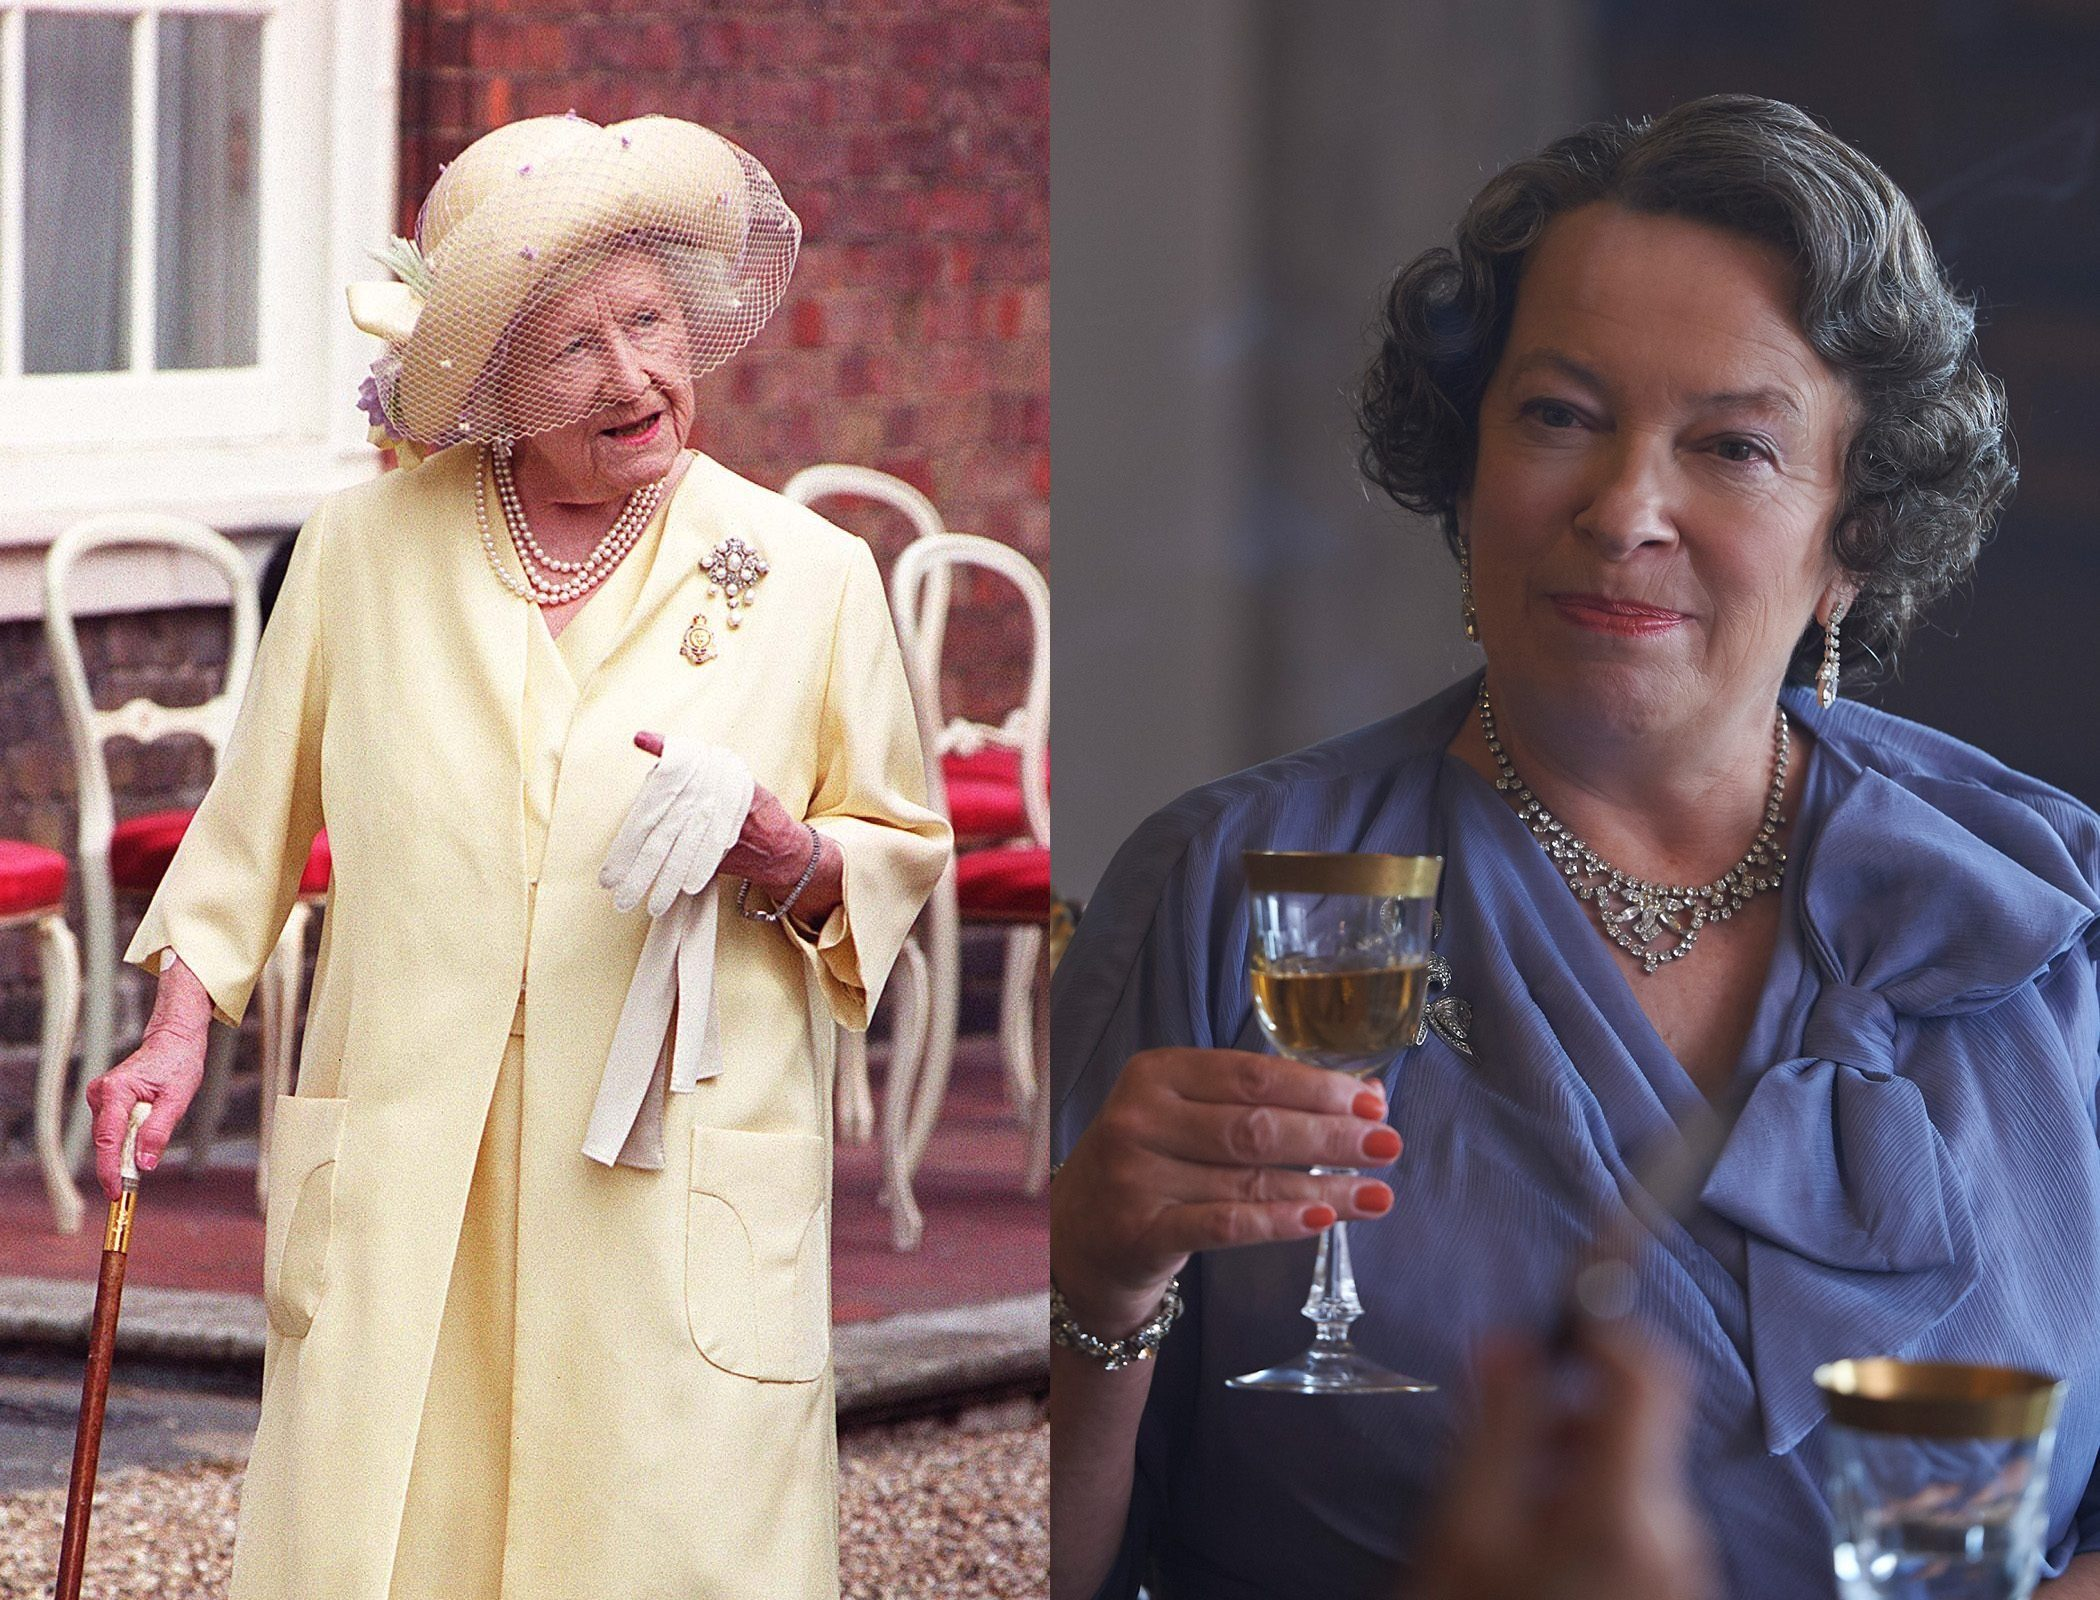 The Queen Mother, as played by Marion Bailey